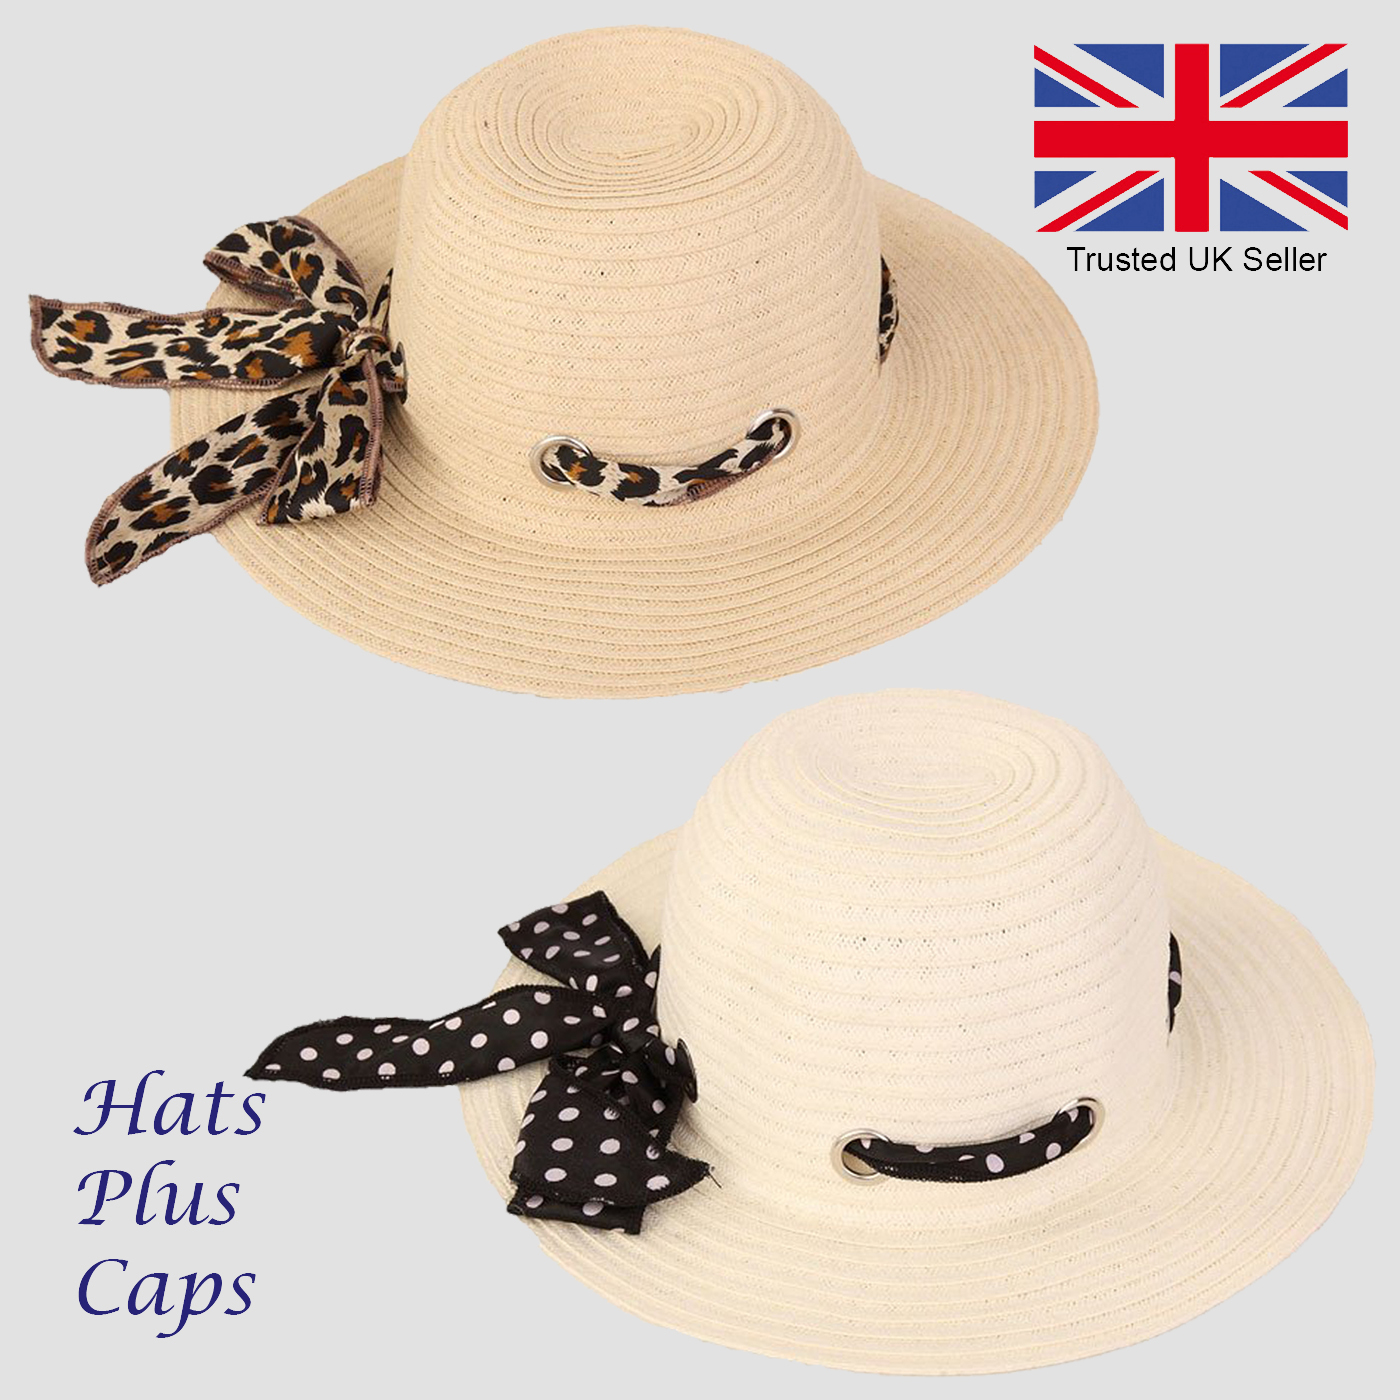 f2bf67e8d Details about Ladies Sun Hat Crushable Wide Brim Straw Summer Beach Holiday  Foldable Packable